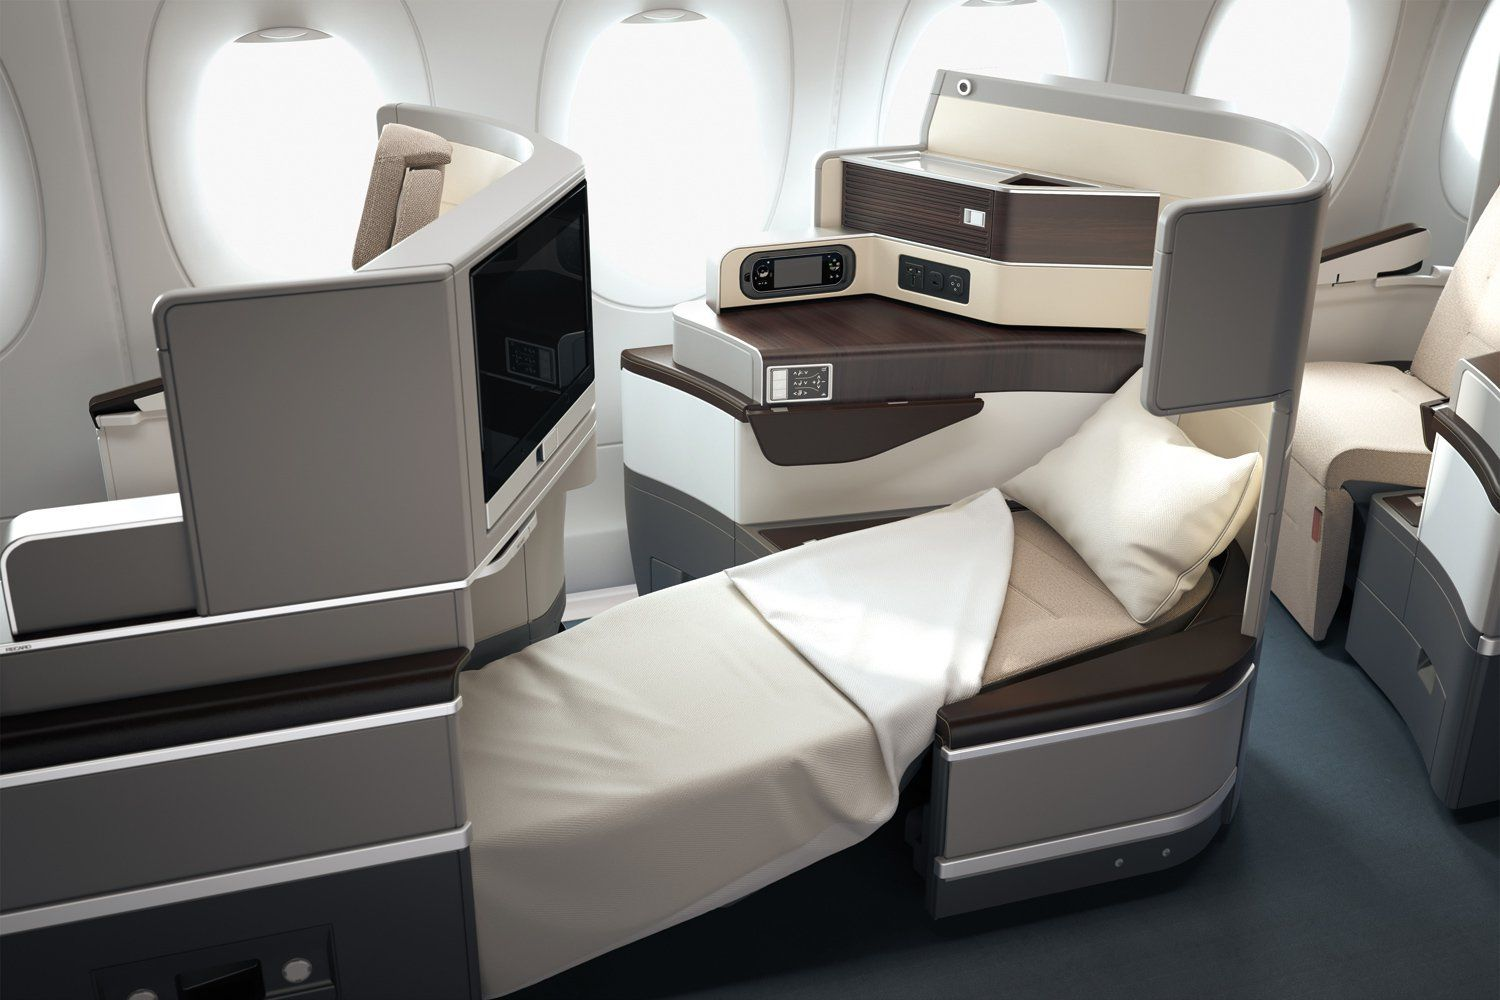 Seriously Great Business Class Deal On TAP Air Portugal - Live and Let's Fly